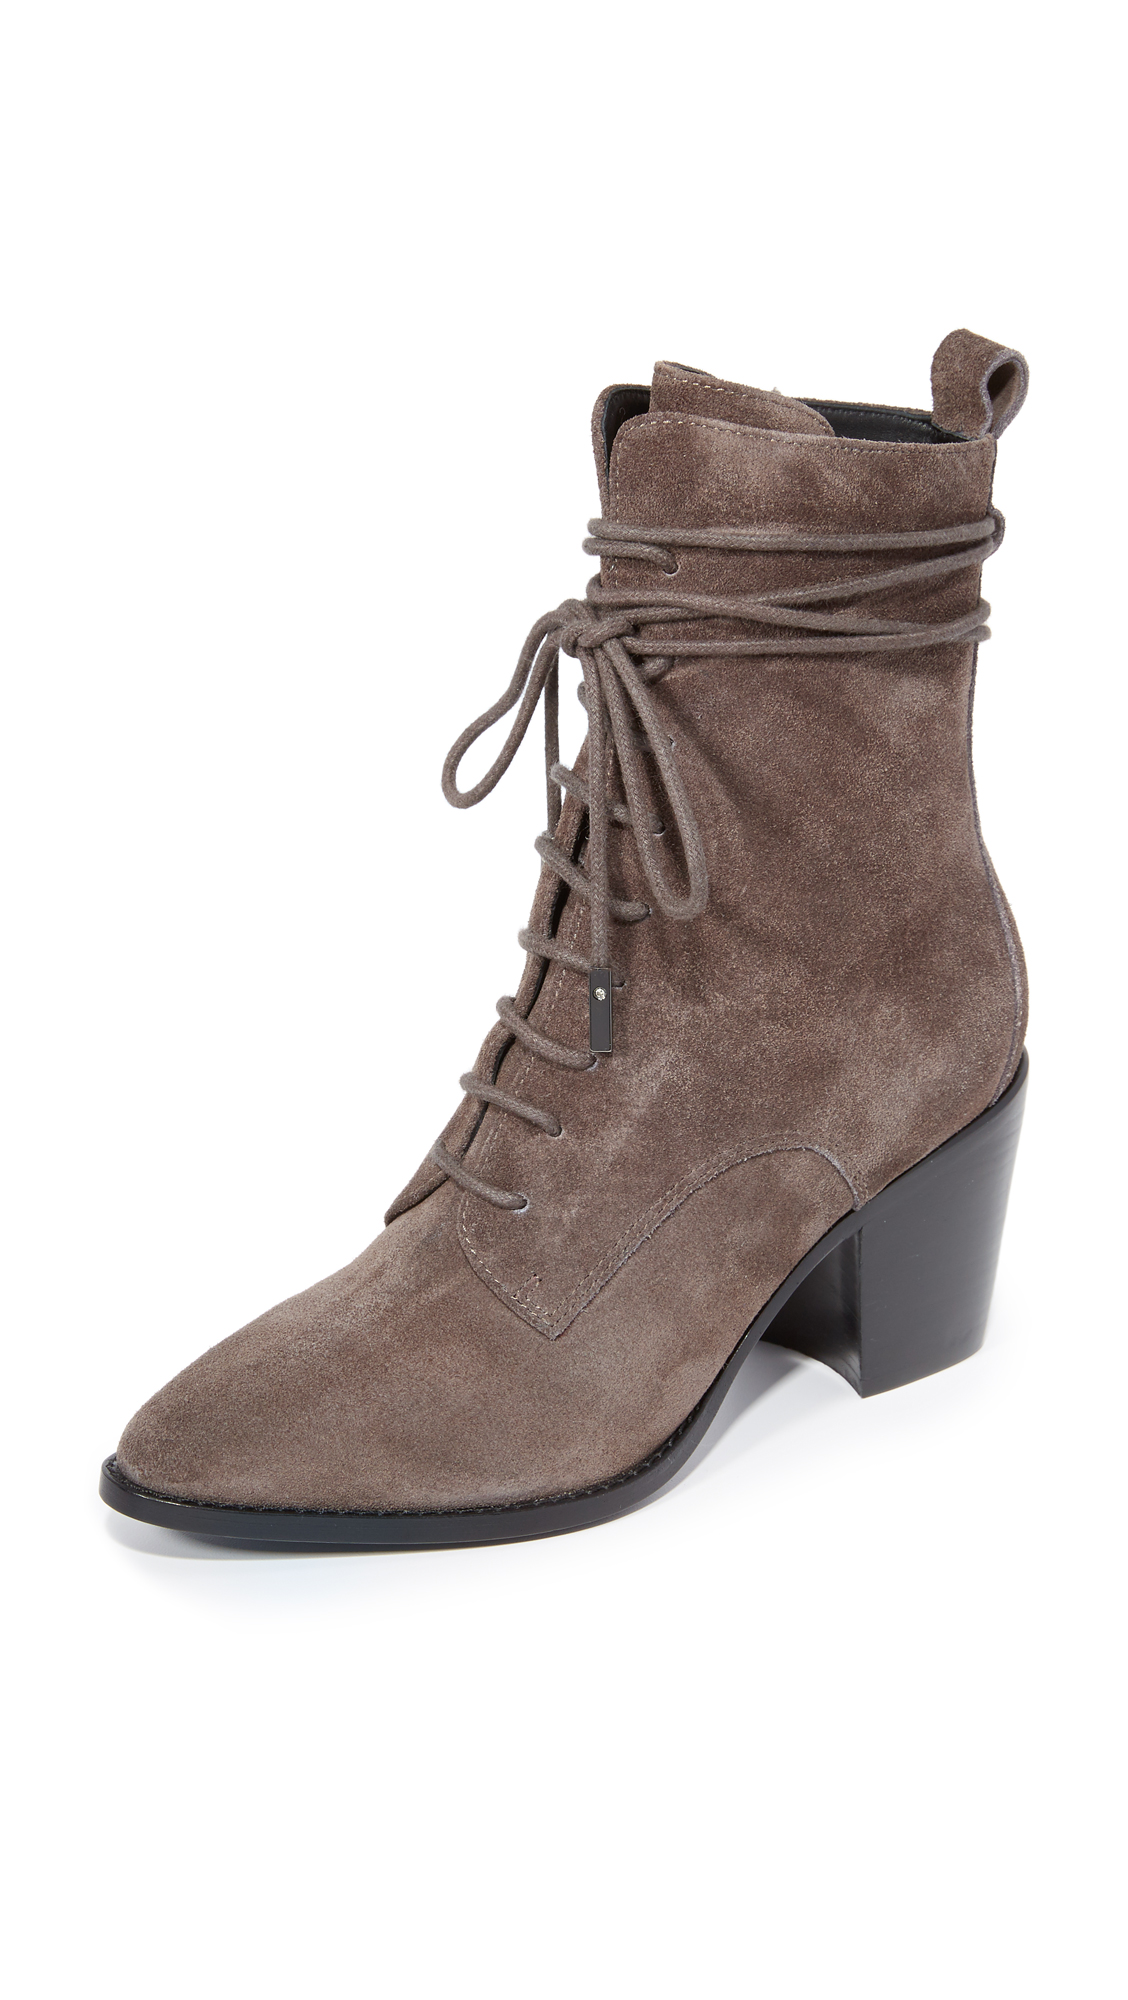 Sigerson Morrison Duran Lace Up Booties - Anthracite